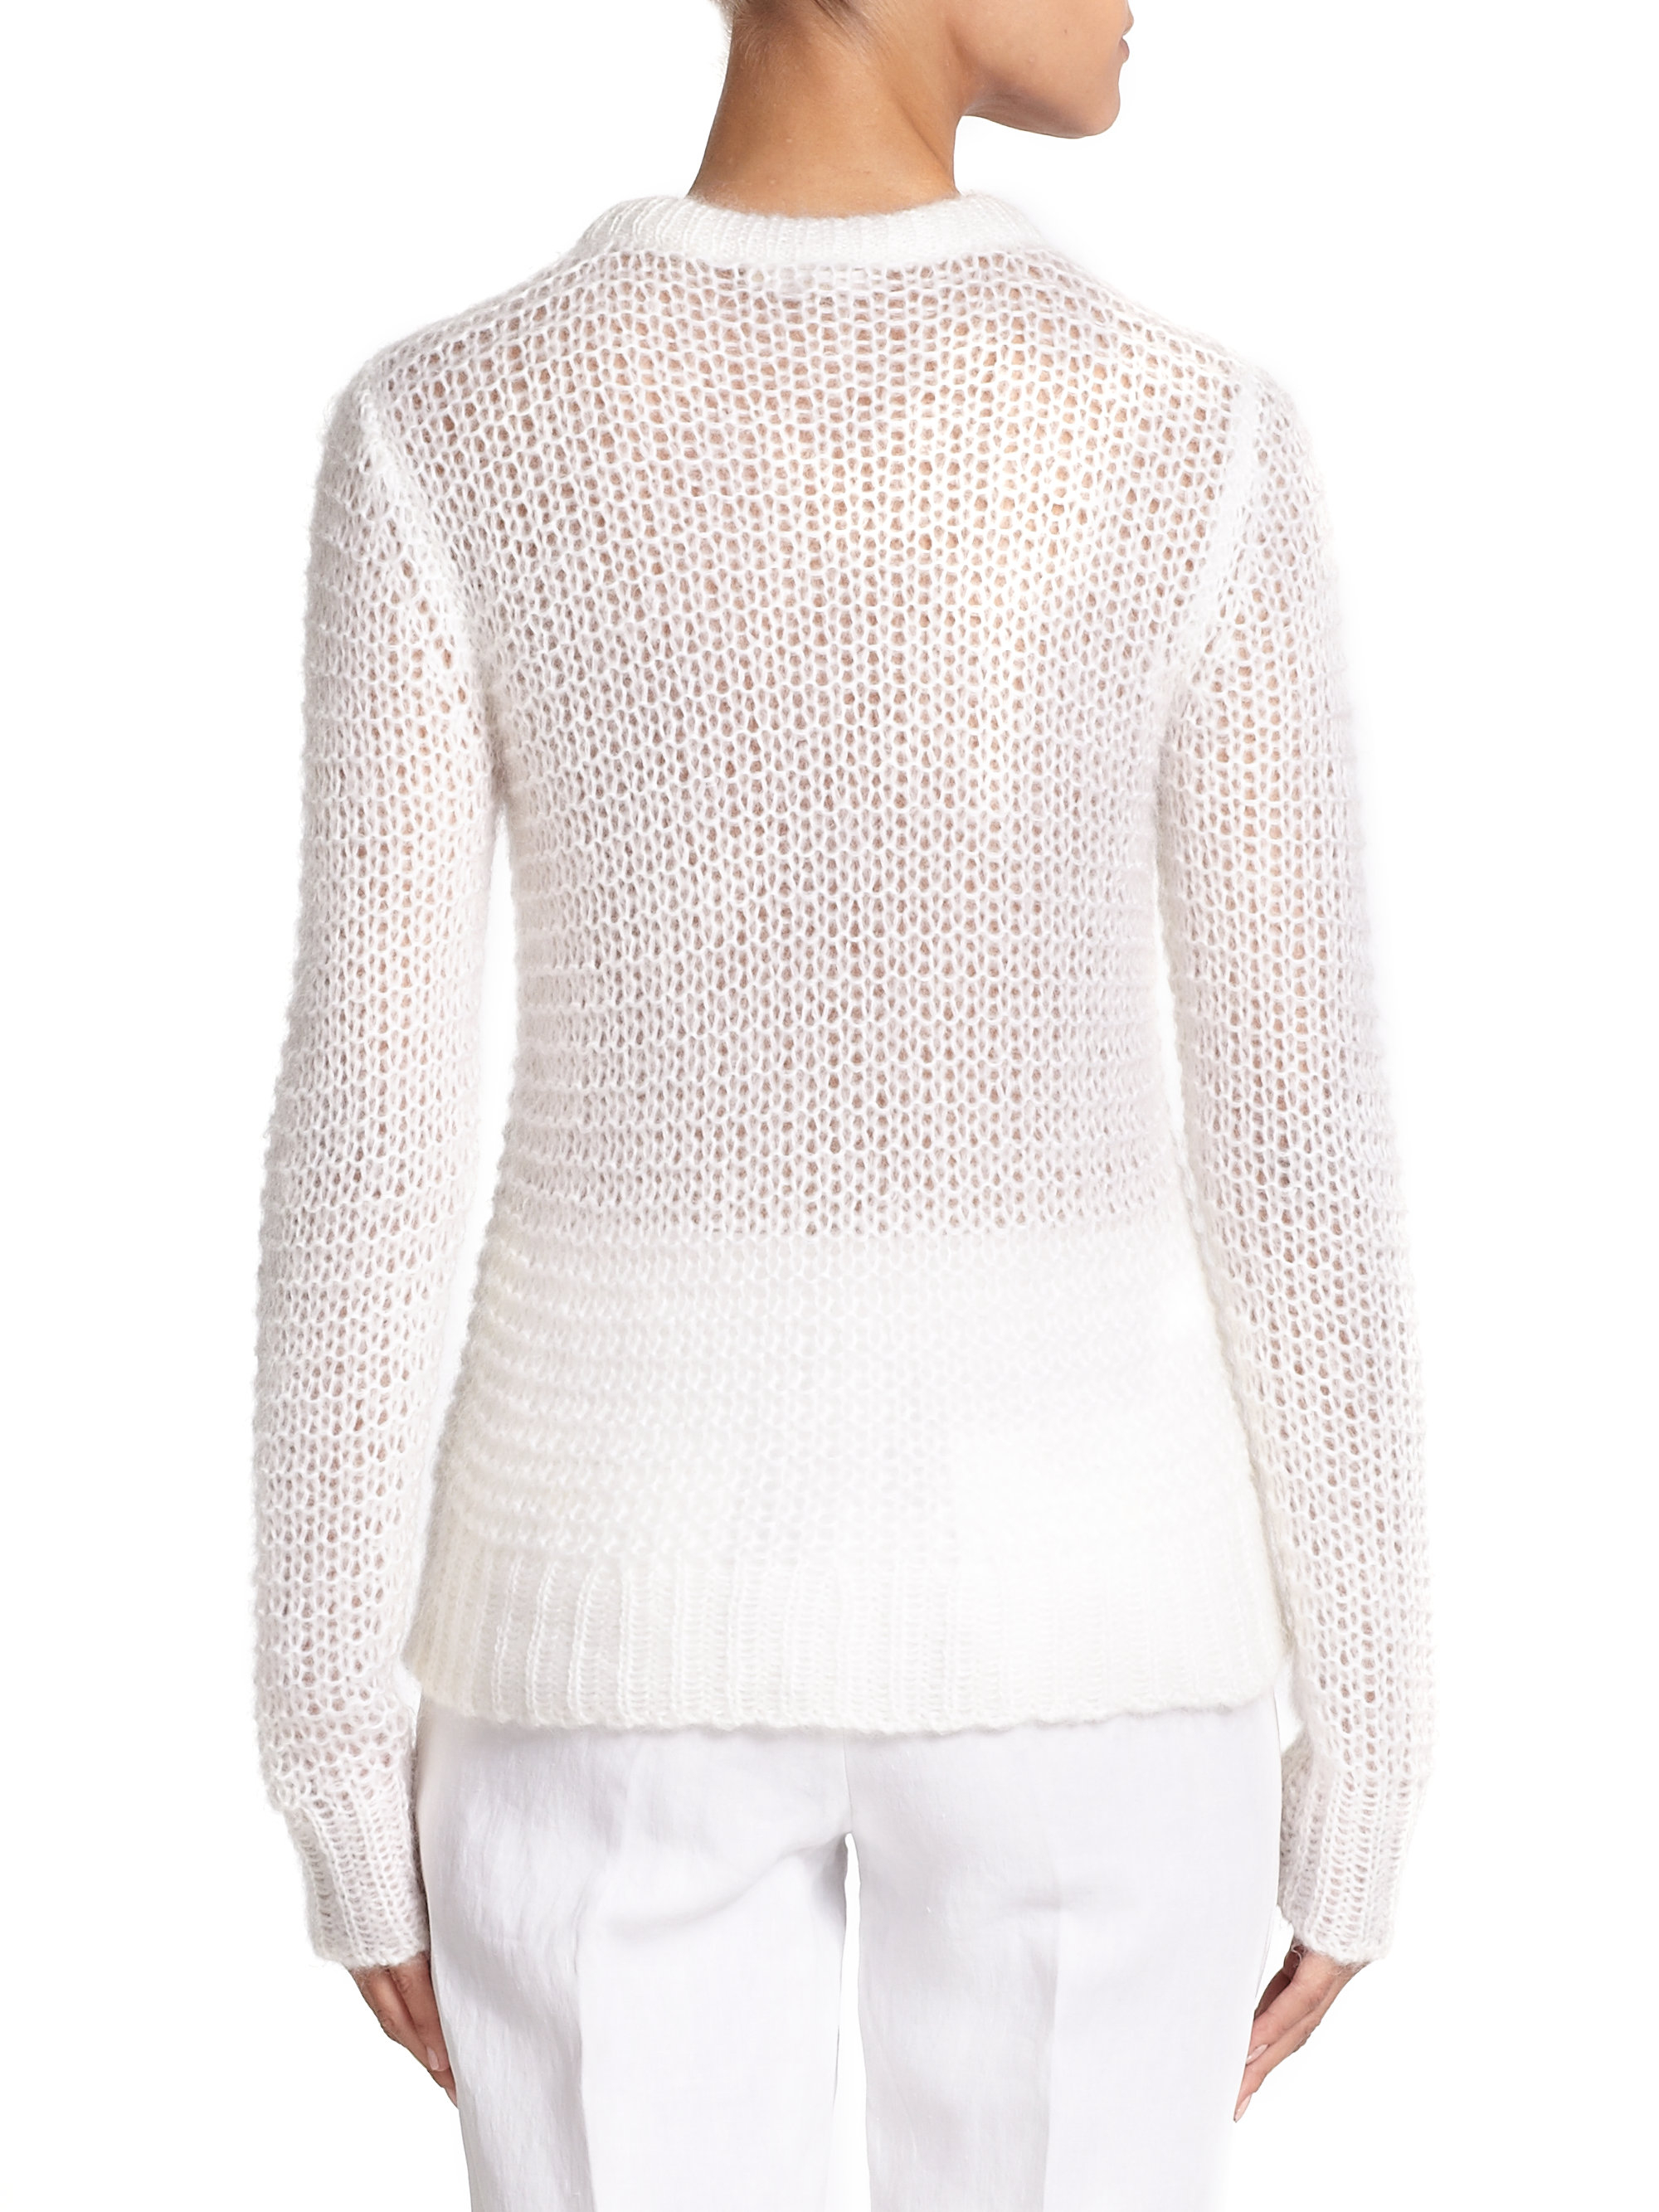 white open knit sweater - 28 images - theory sweater tollie b open ...